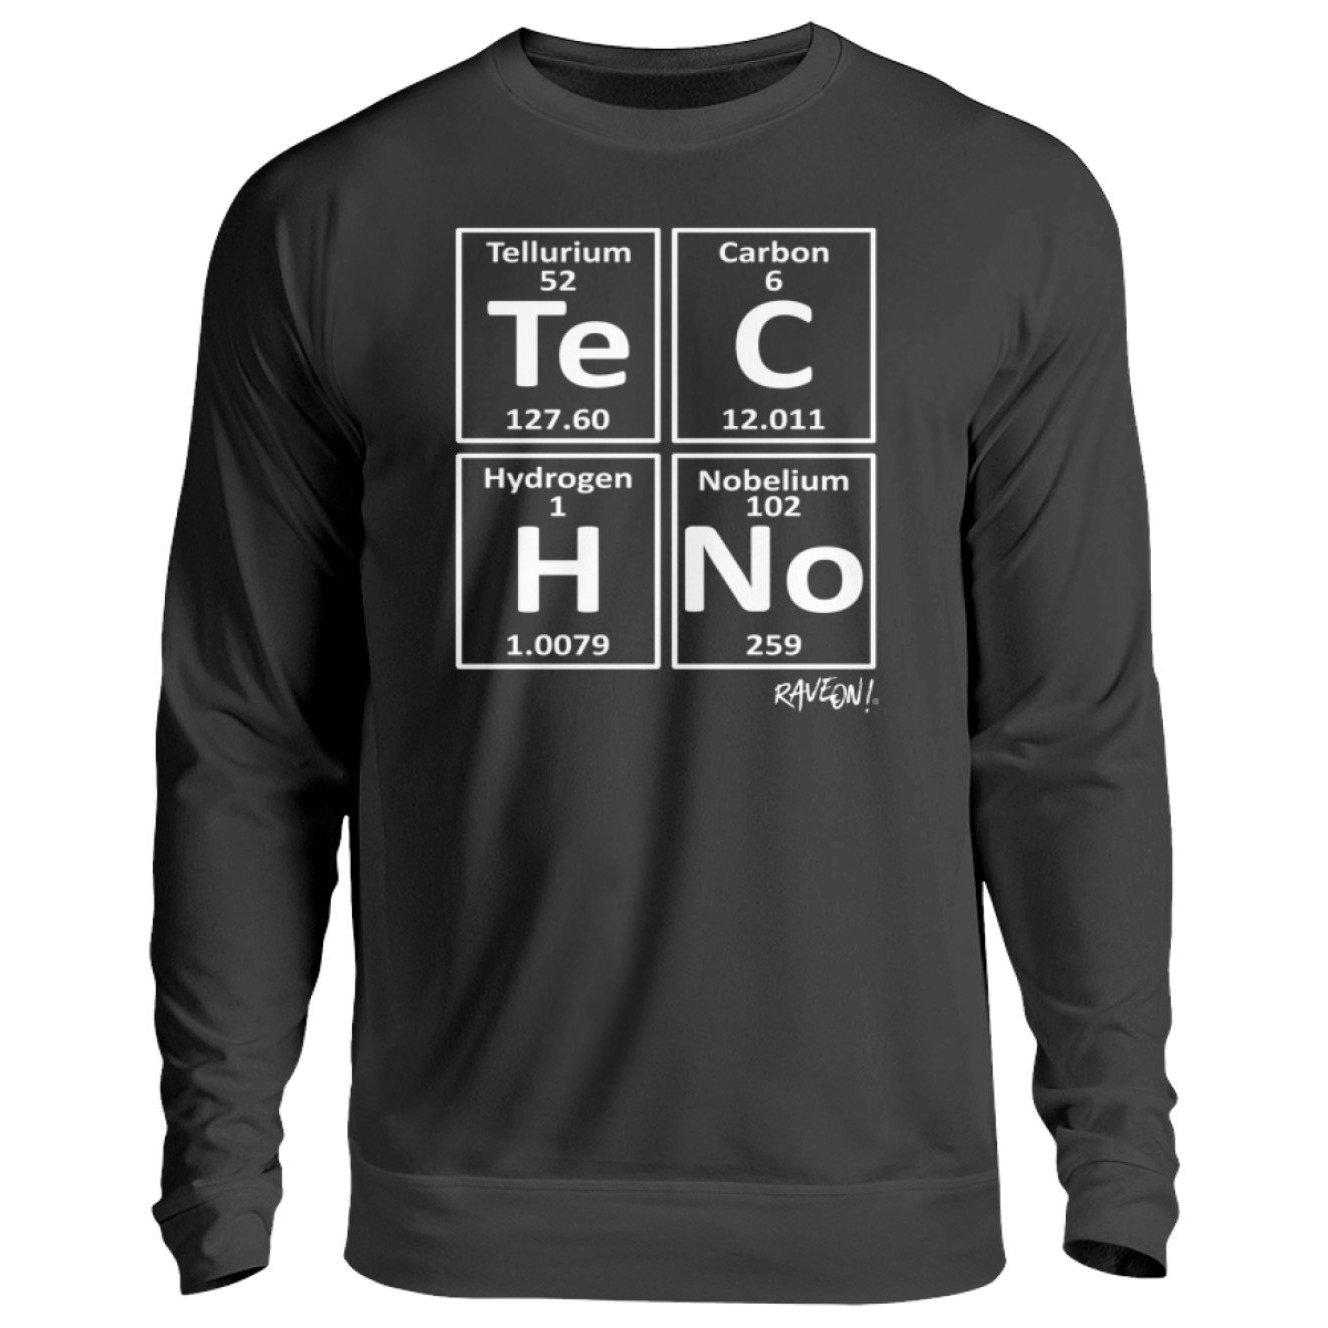 TeCHNo Elements - Rave On!® - Unisex Pullover Unisex Sweatshirt Jet Black / S - Rave On!® der Club & Techno Szene Shop für Coole Junge Mode Streetwear Style & Fashion Outfits + Sexy Festival 420 Stuff